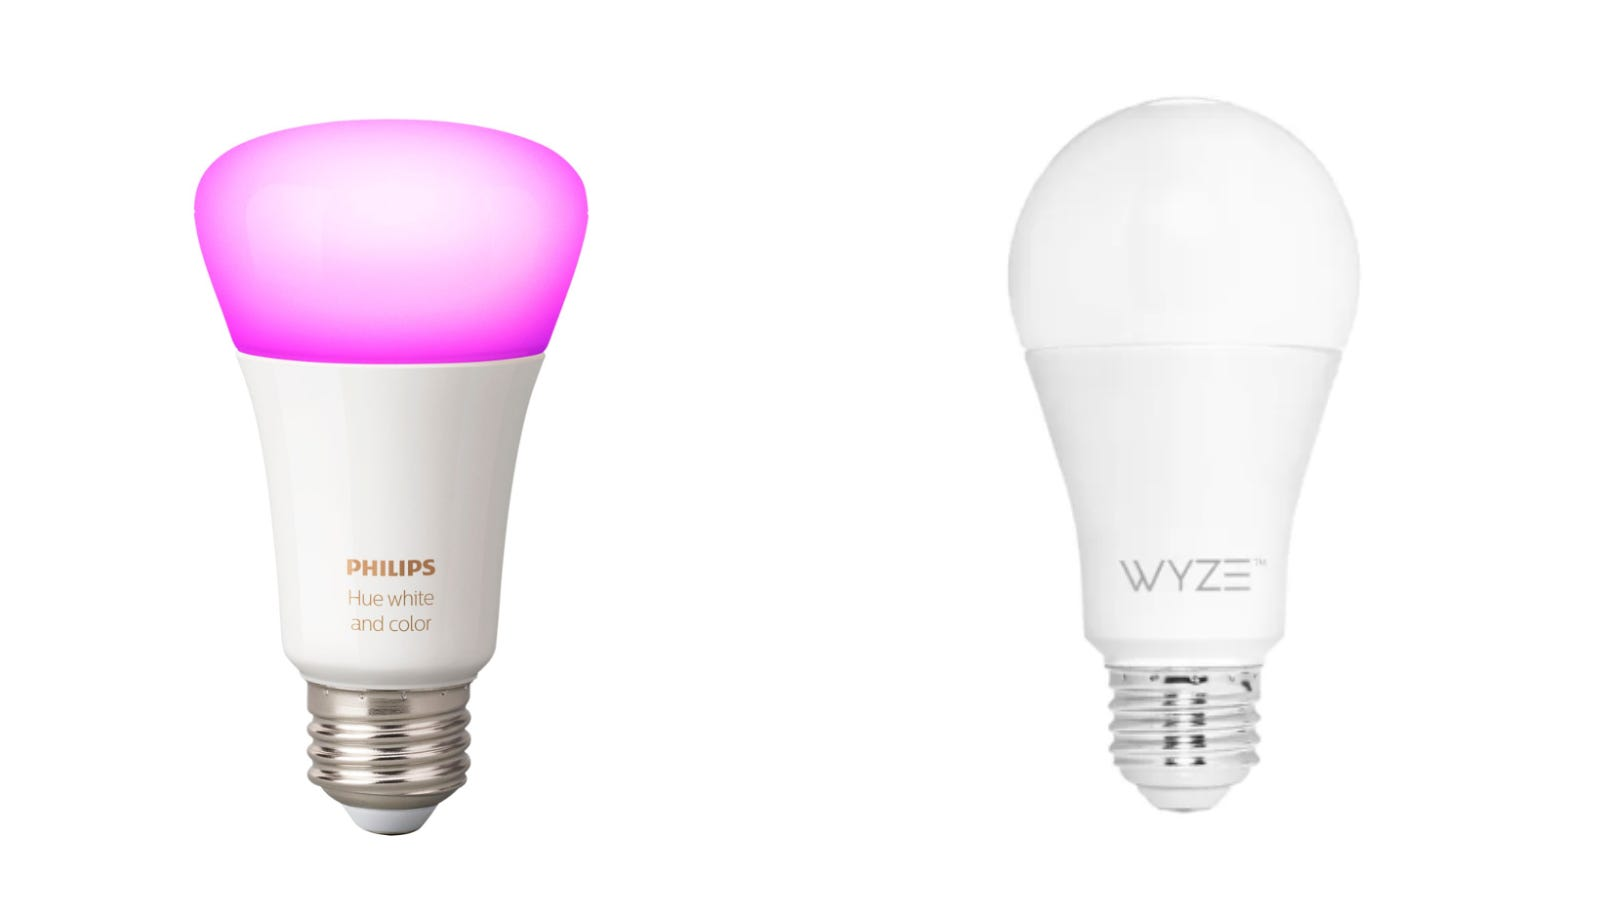 Phillips Hue colored bulb and standard Wyze bulb against a white background